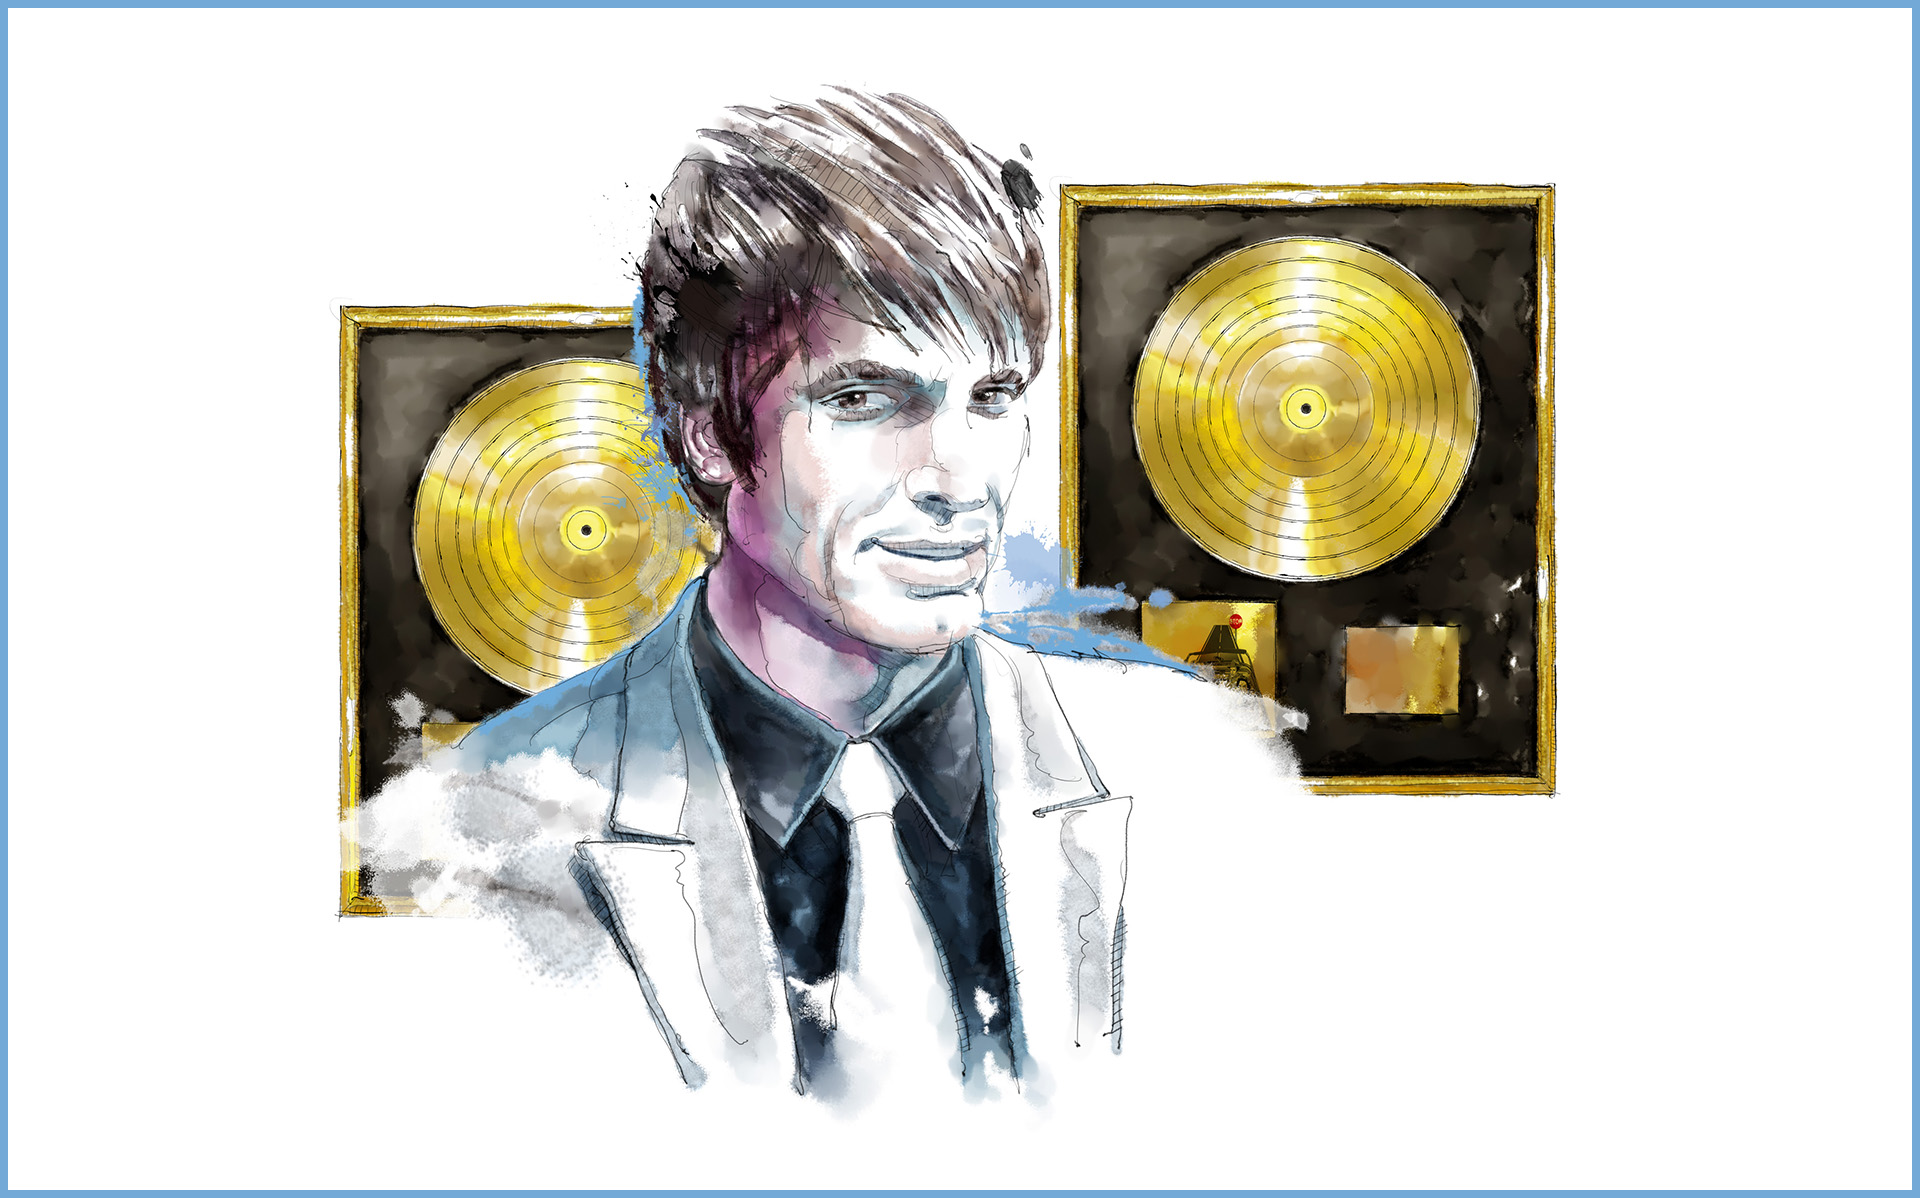 Golden disc / El país / The country of music / I-real studios / Digital illustration